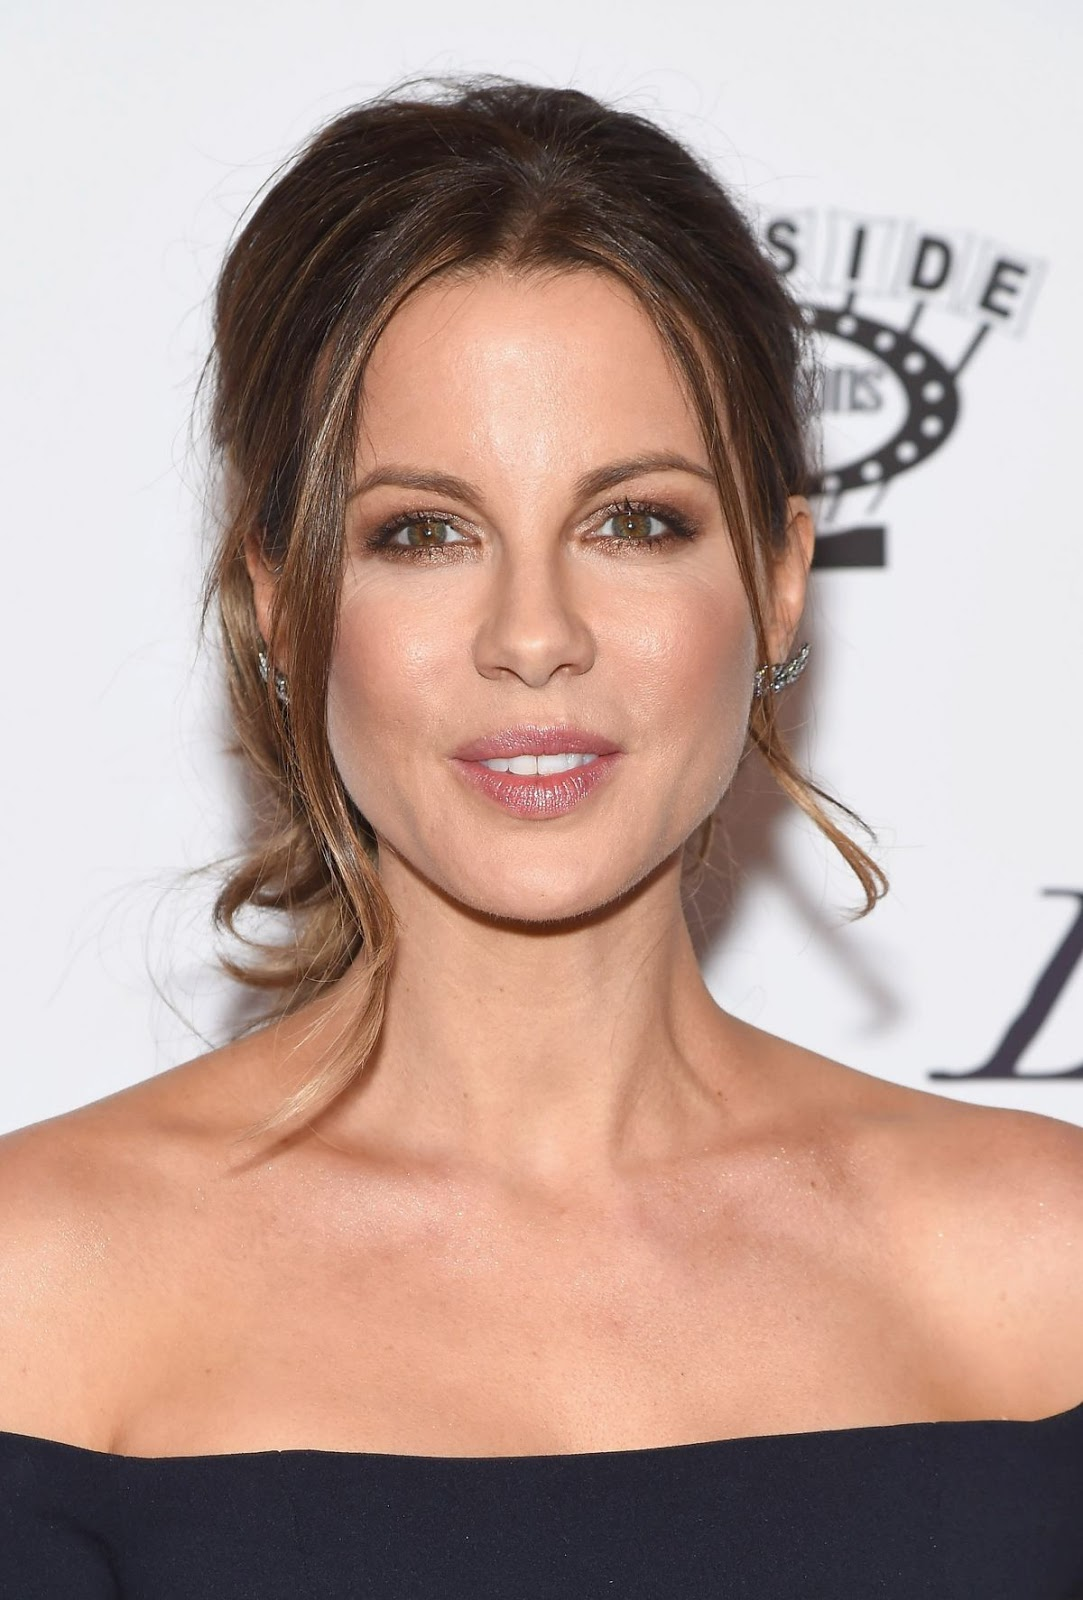 Full HQ Photos of Kate Beckinsale At Love Friendship Premiere In New York